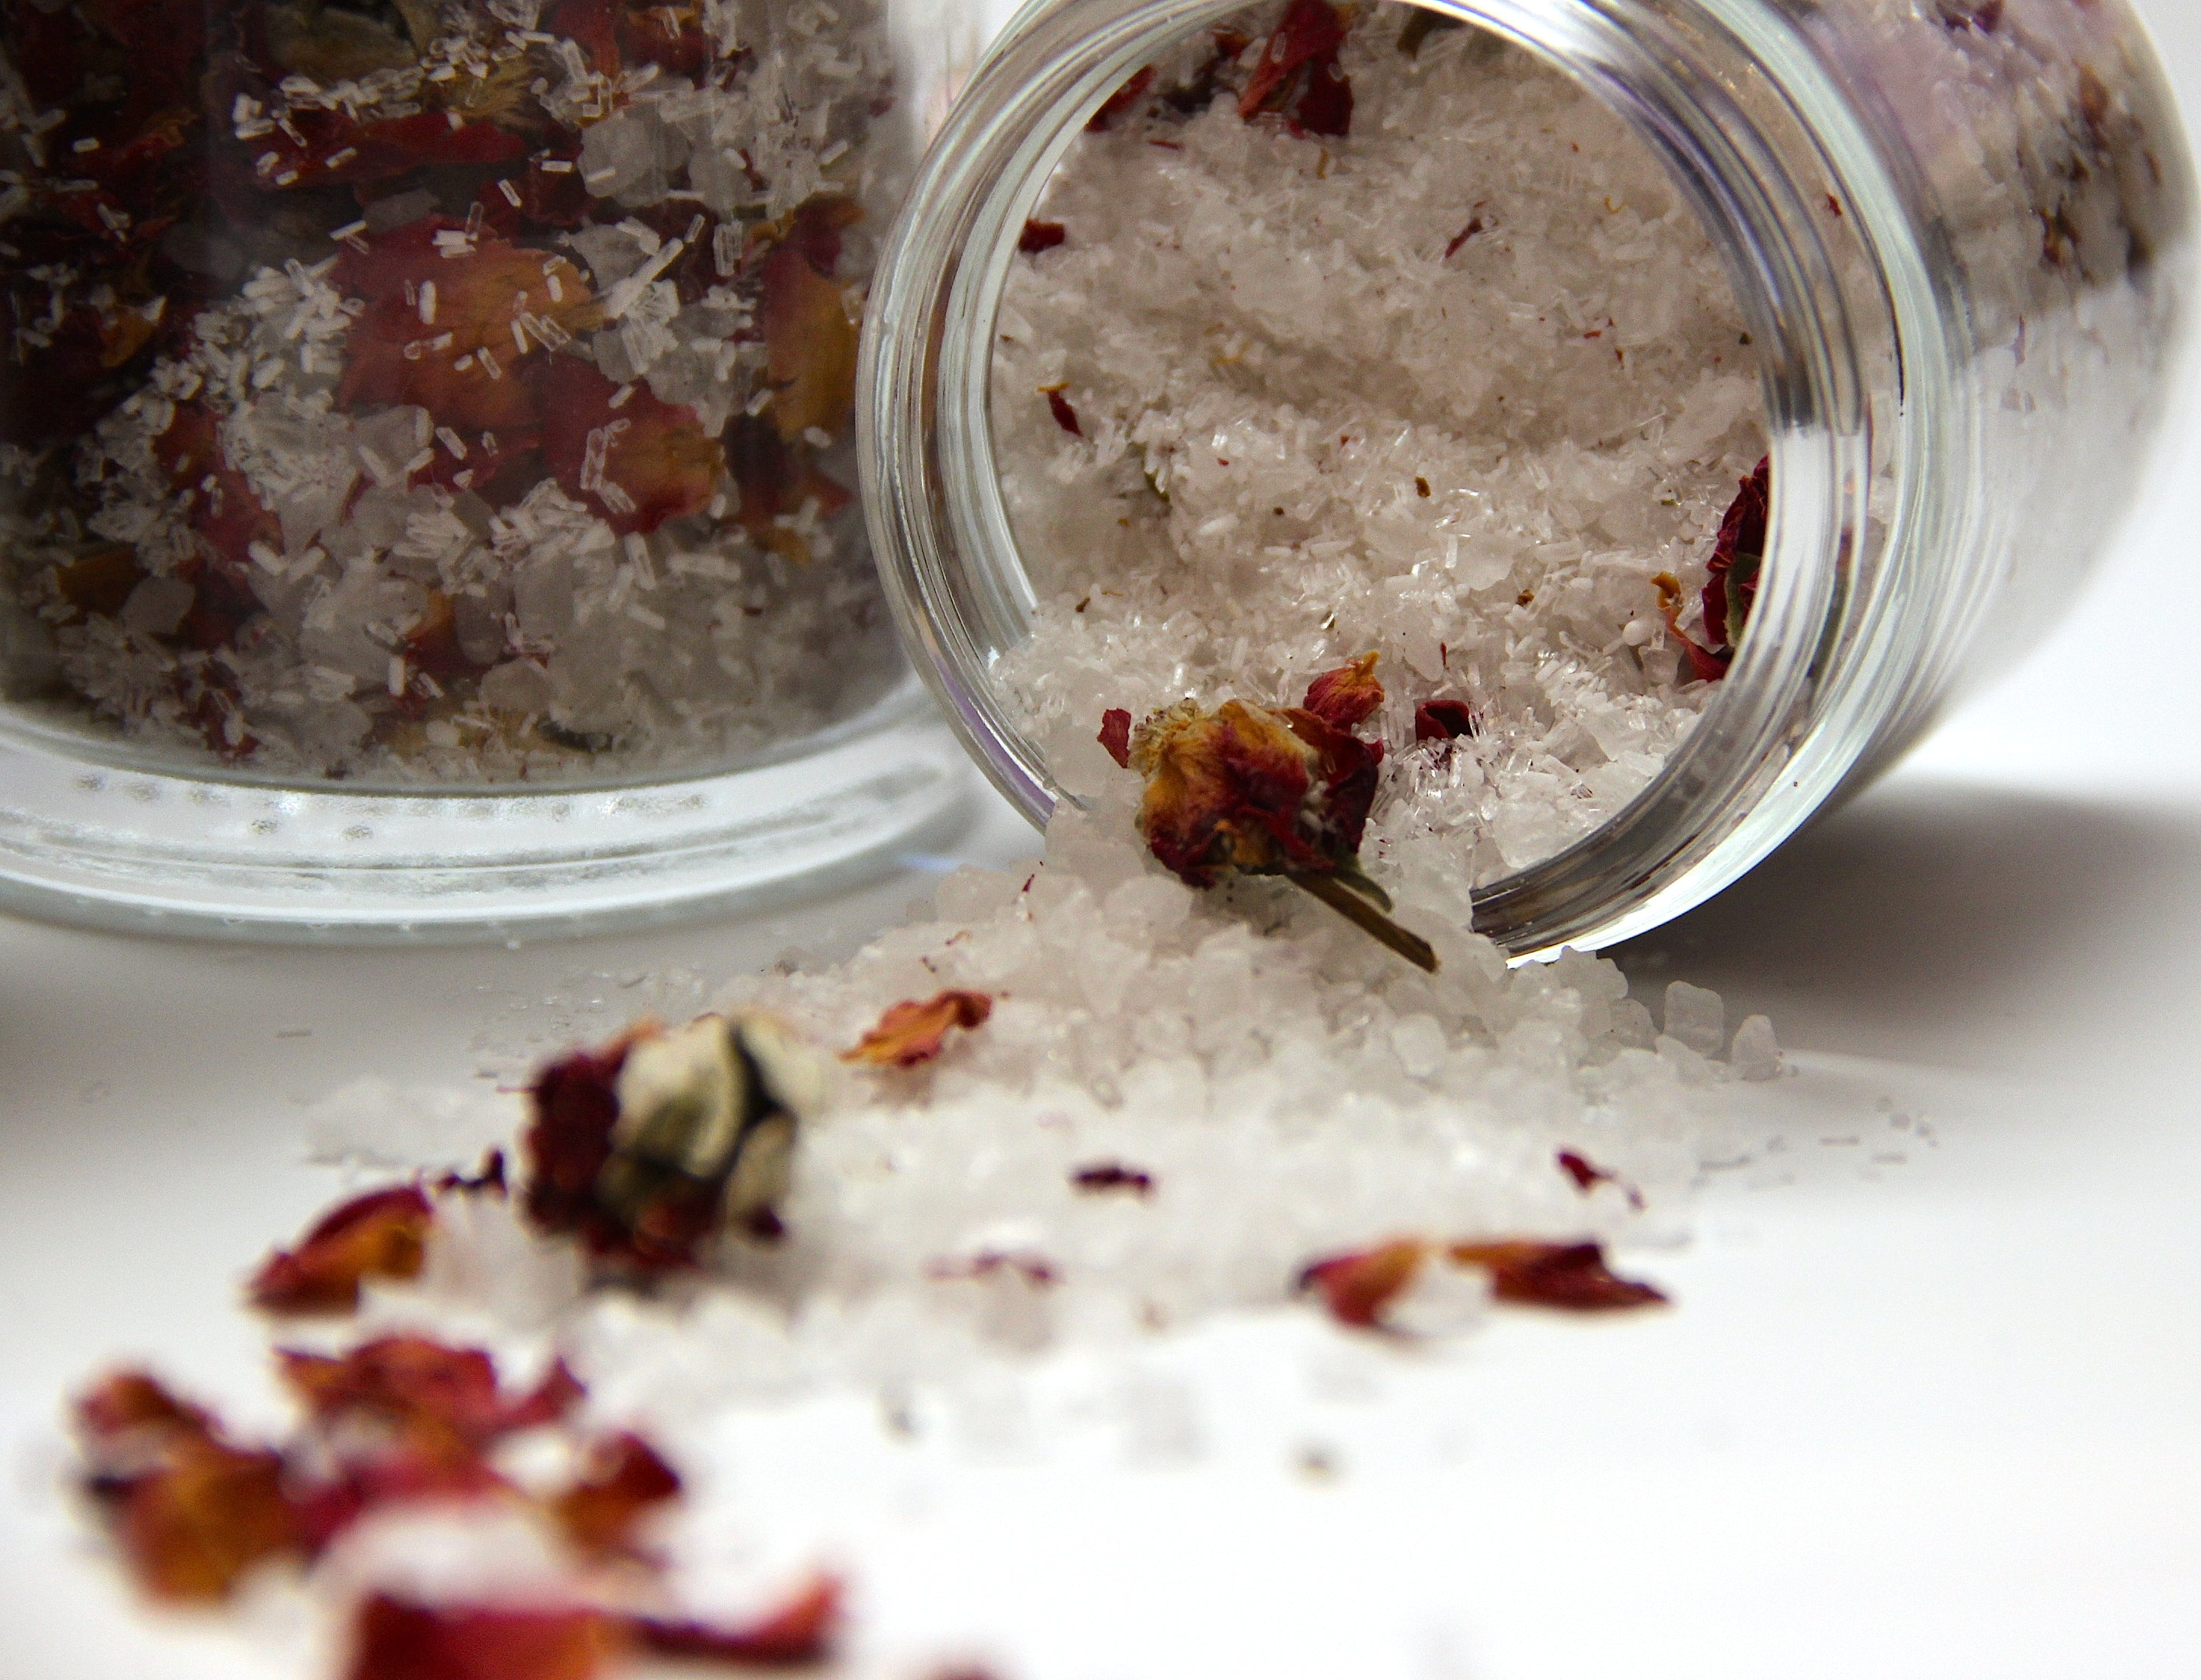 Mullein and Sparrow Bath Salts